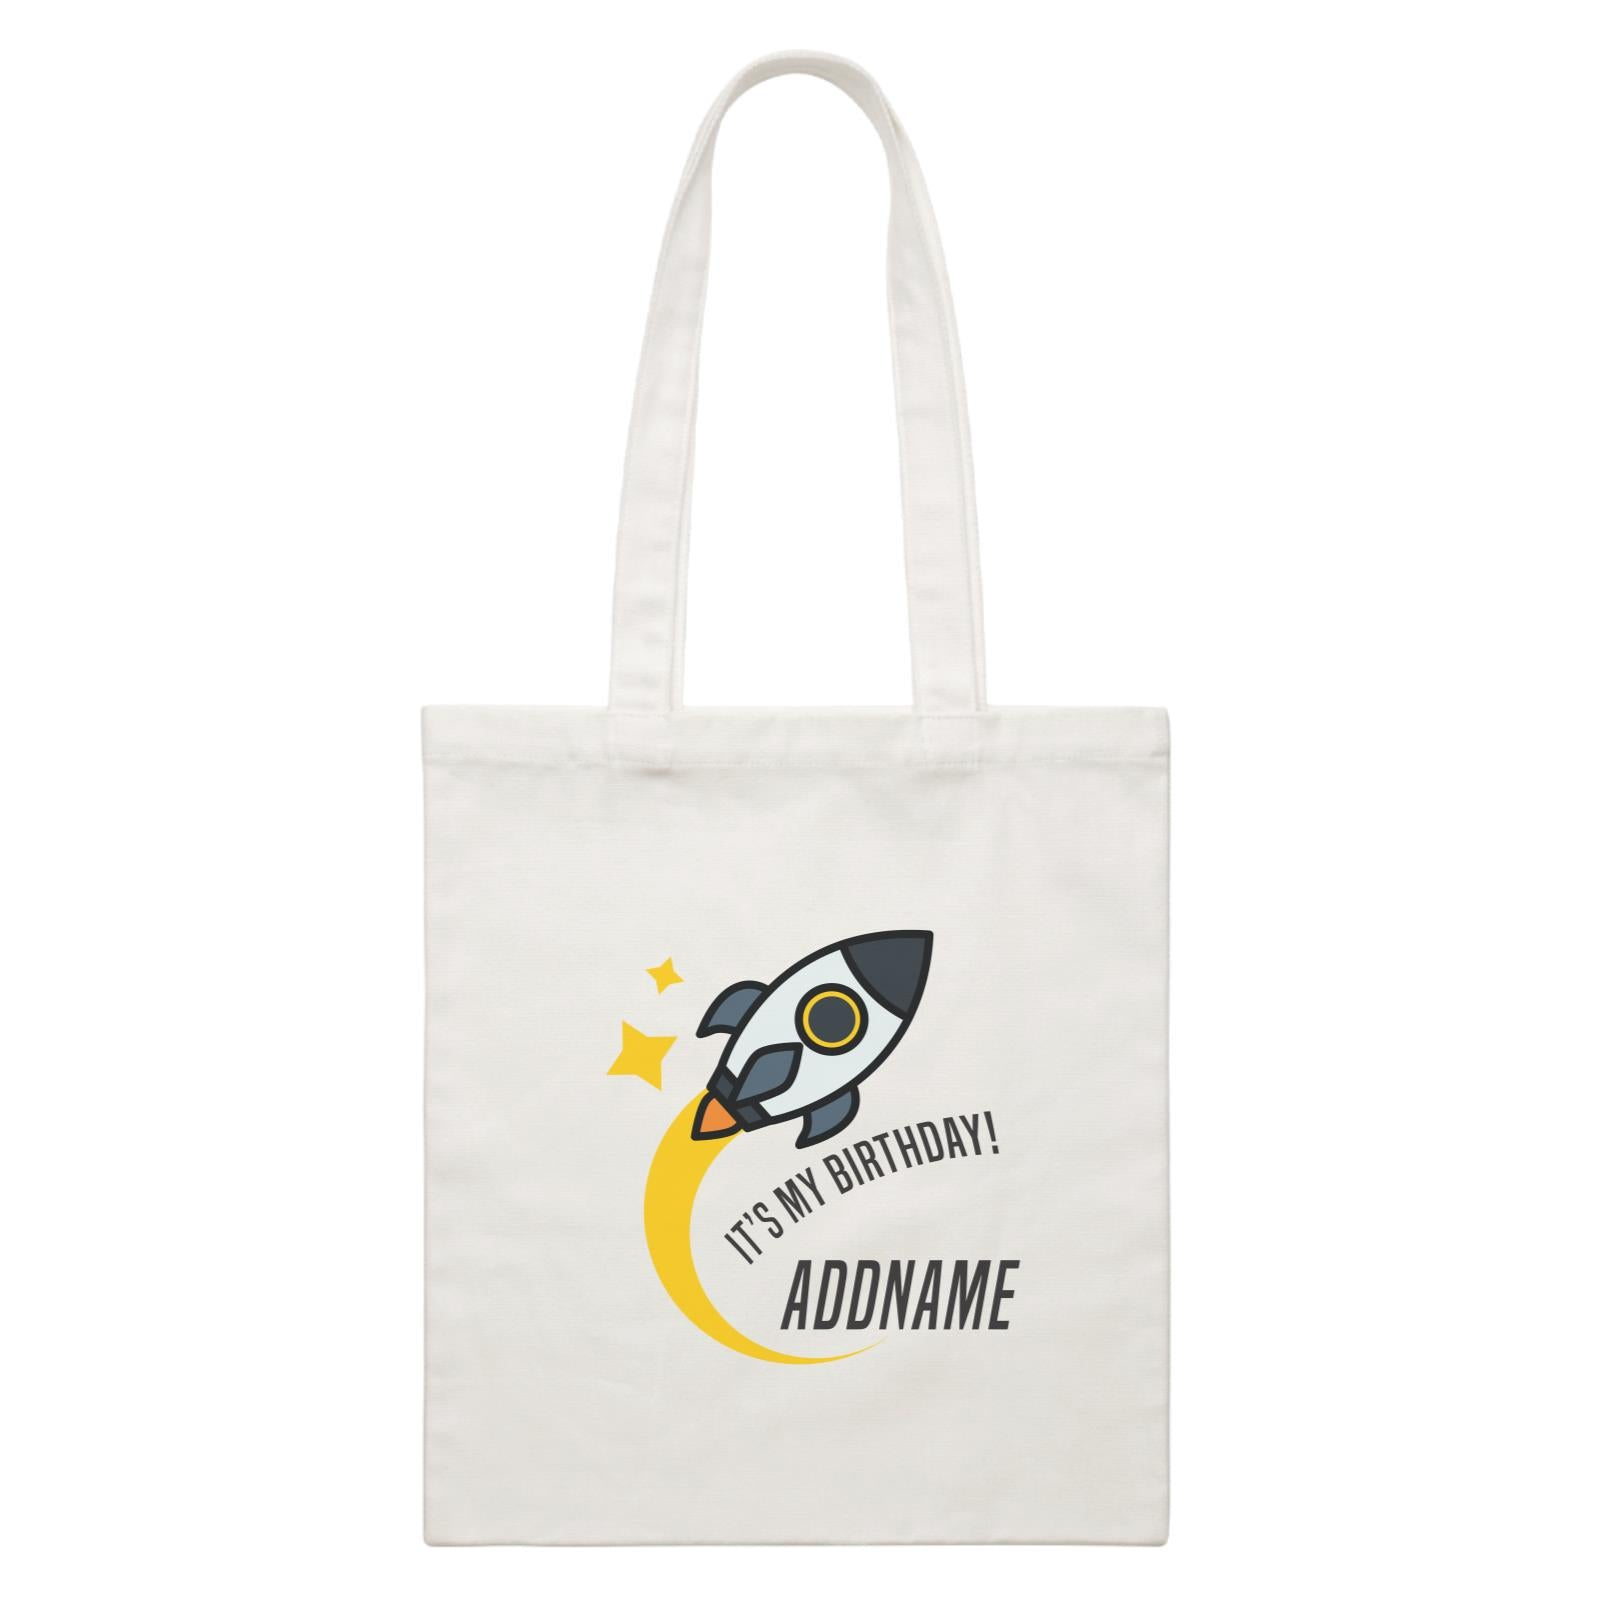 Birthday Flying Rocket To Galaxy It's My Birthday Addname White Canvas Bag